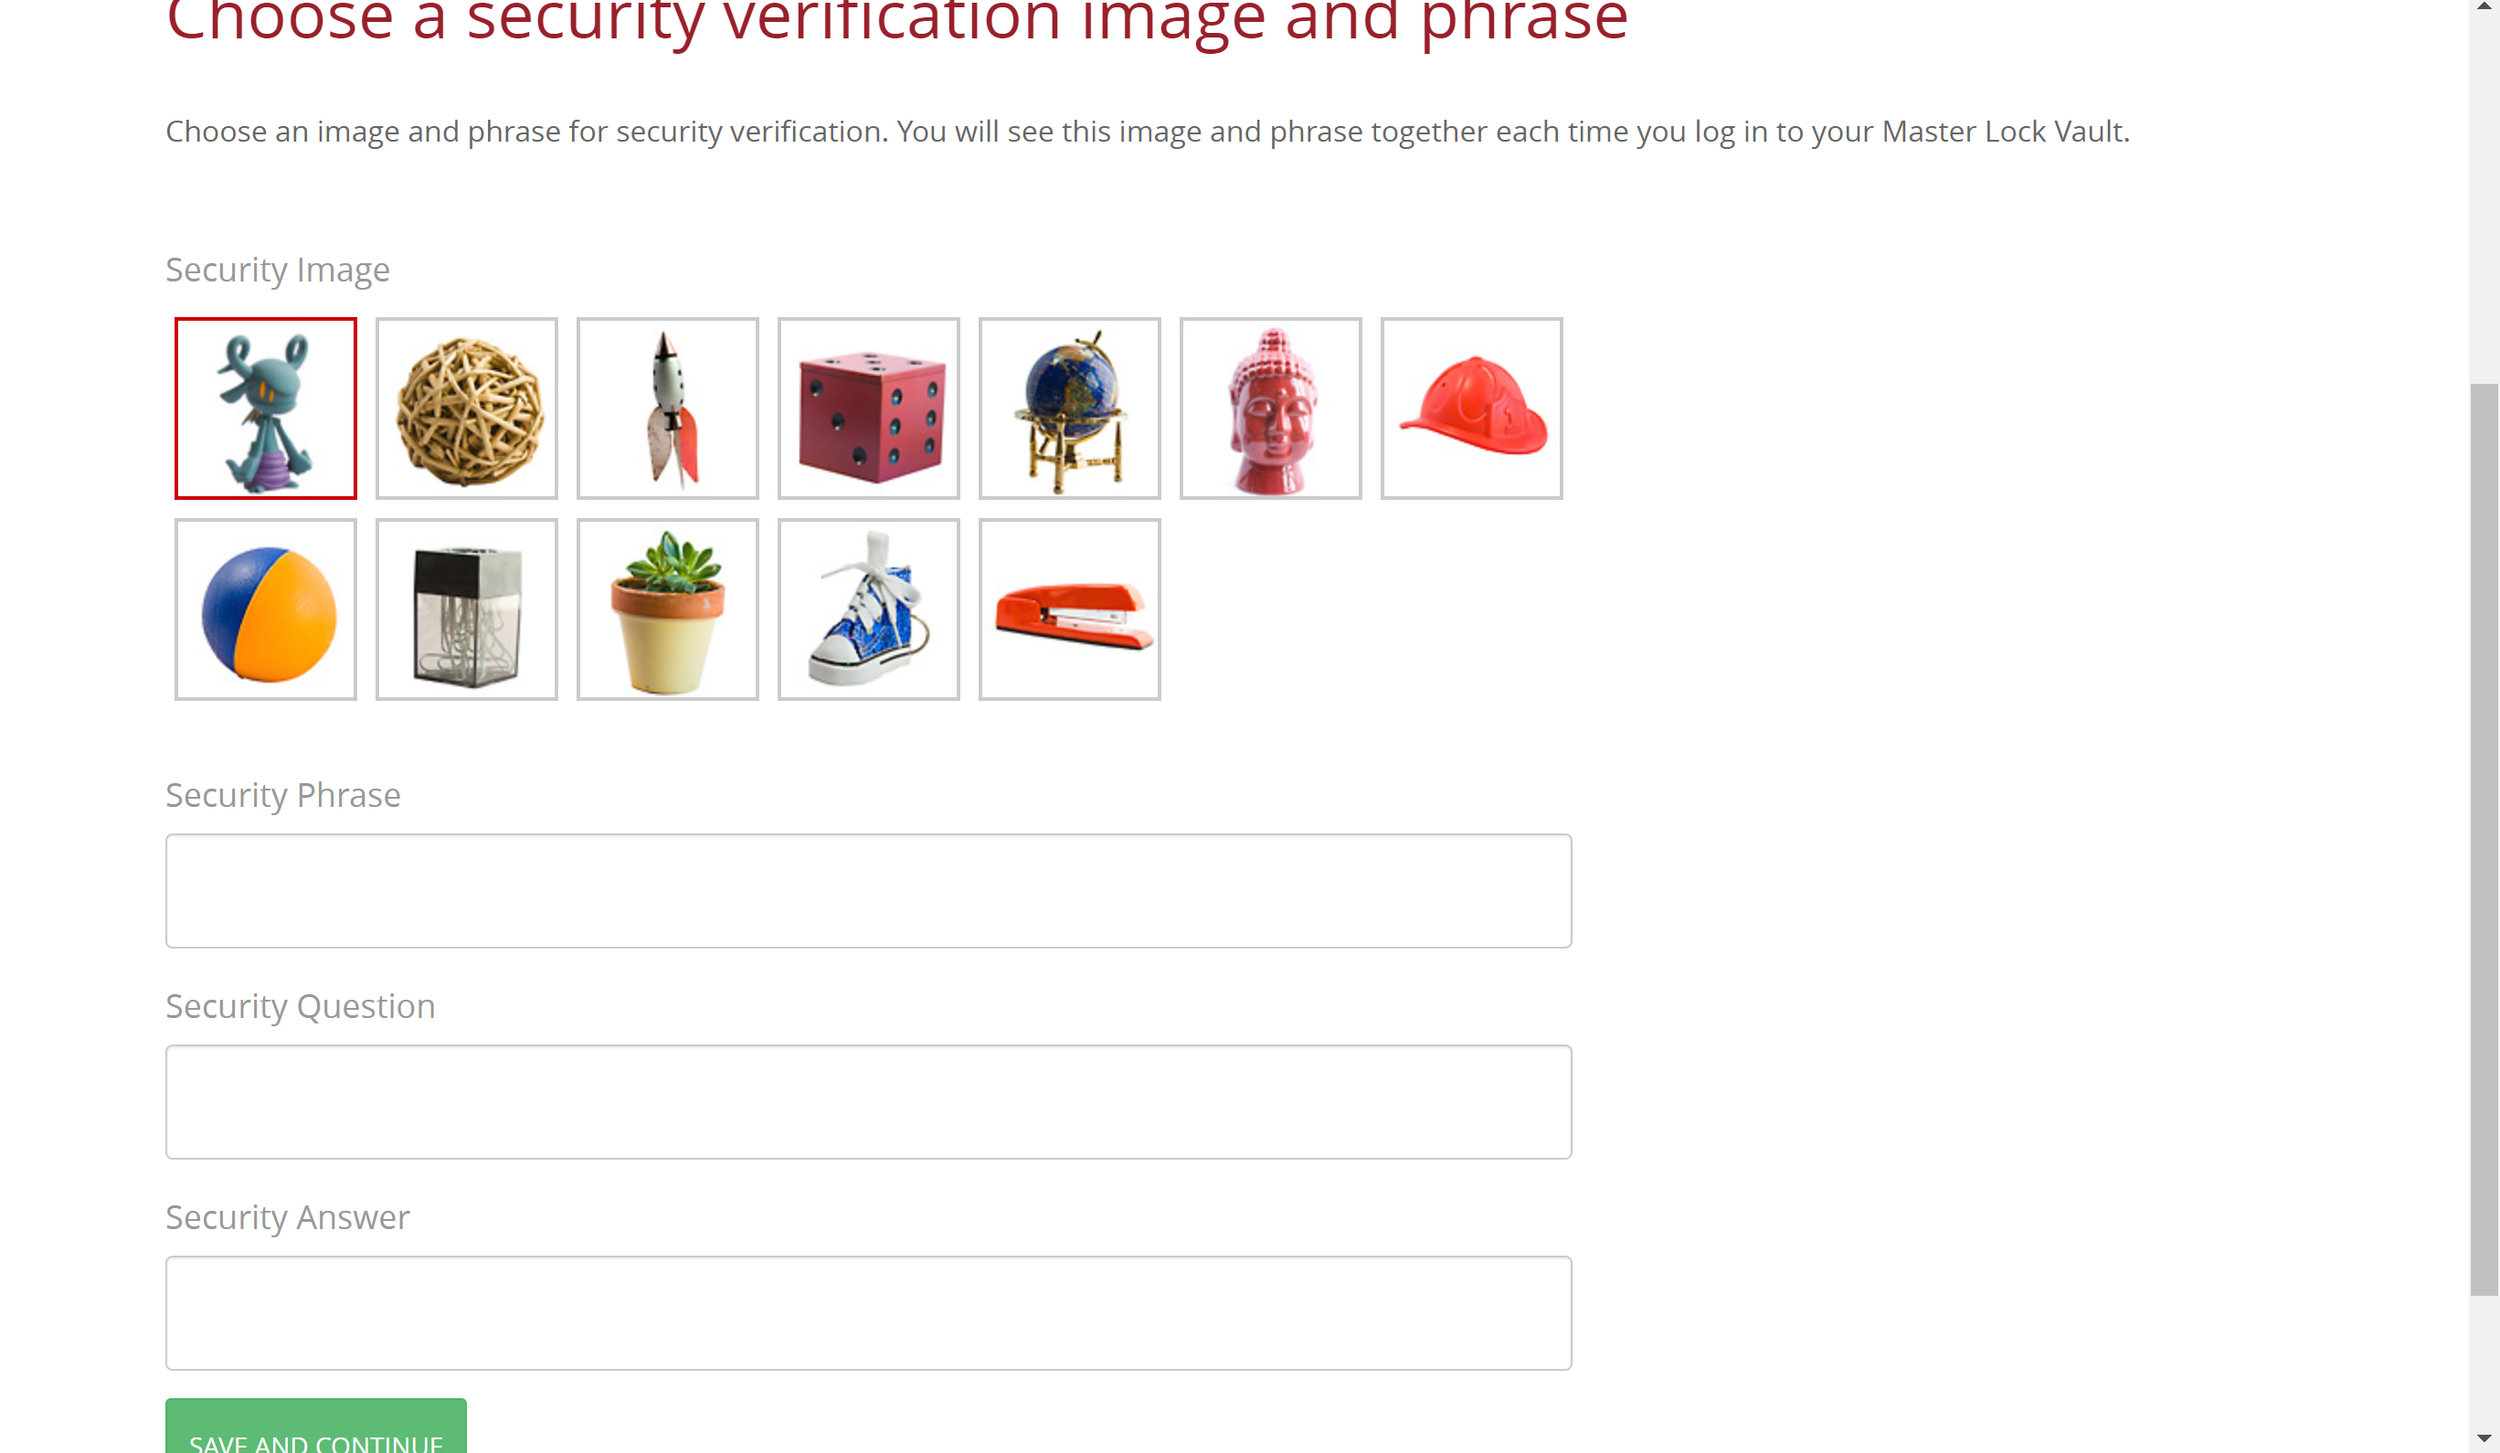 enrollment page 4 - security image and question.jpg